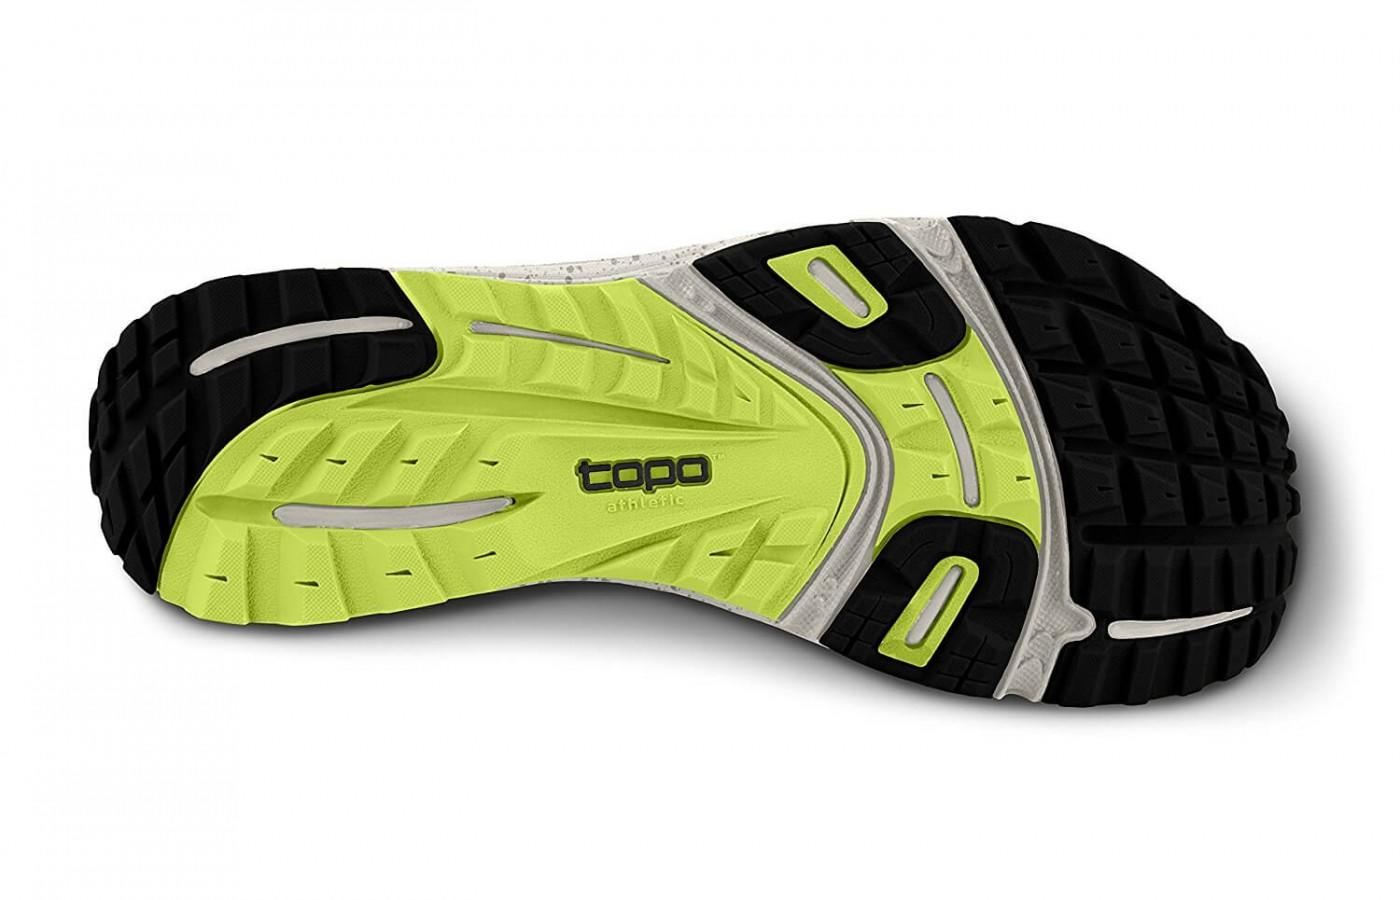 the outsole of the Topo Athletic MT-2 is studde with numerous shallow lugs and both horizontal and vertical flex grooves